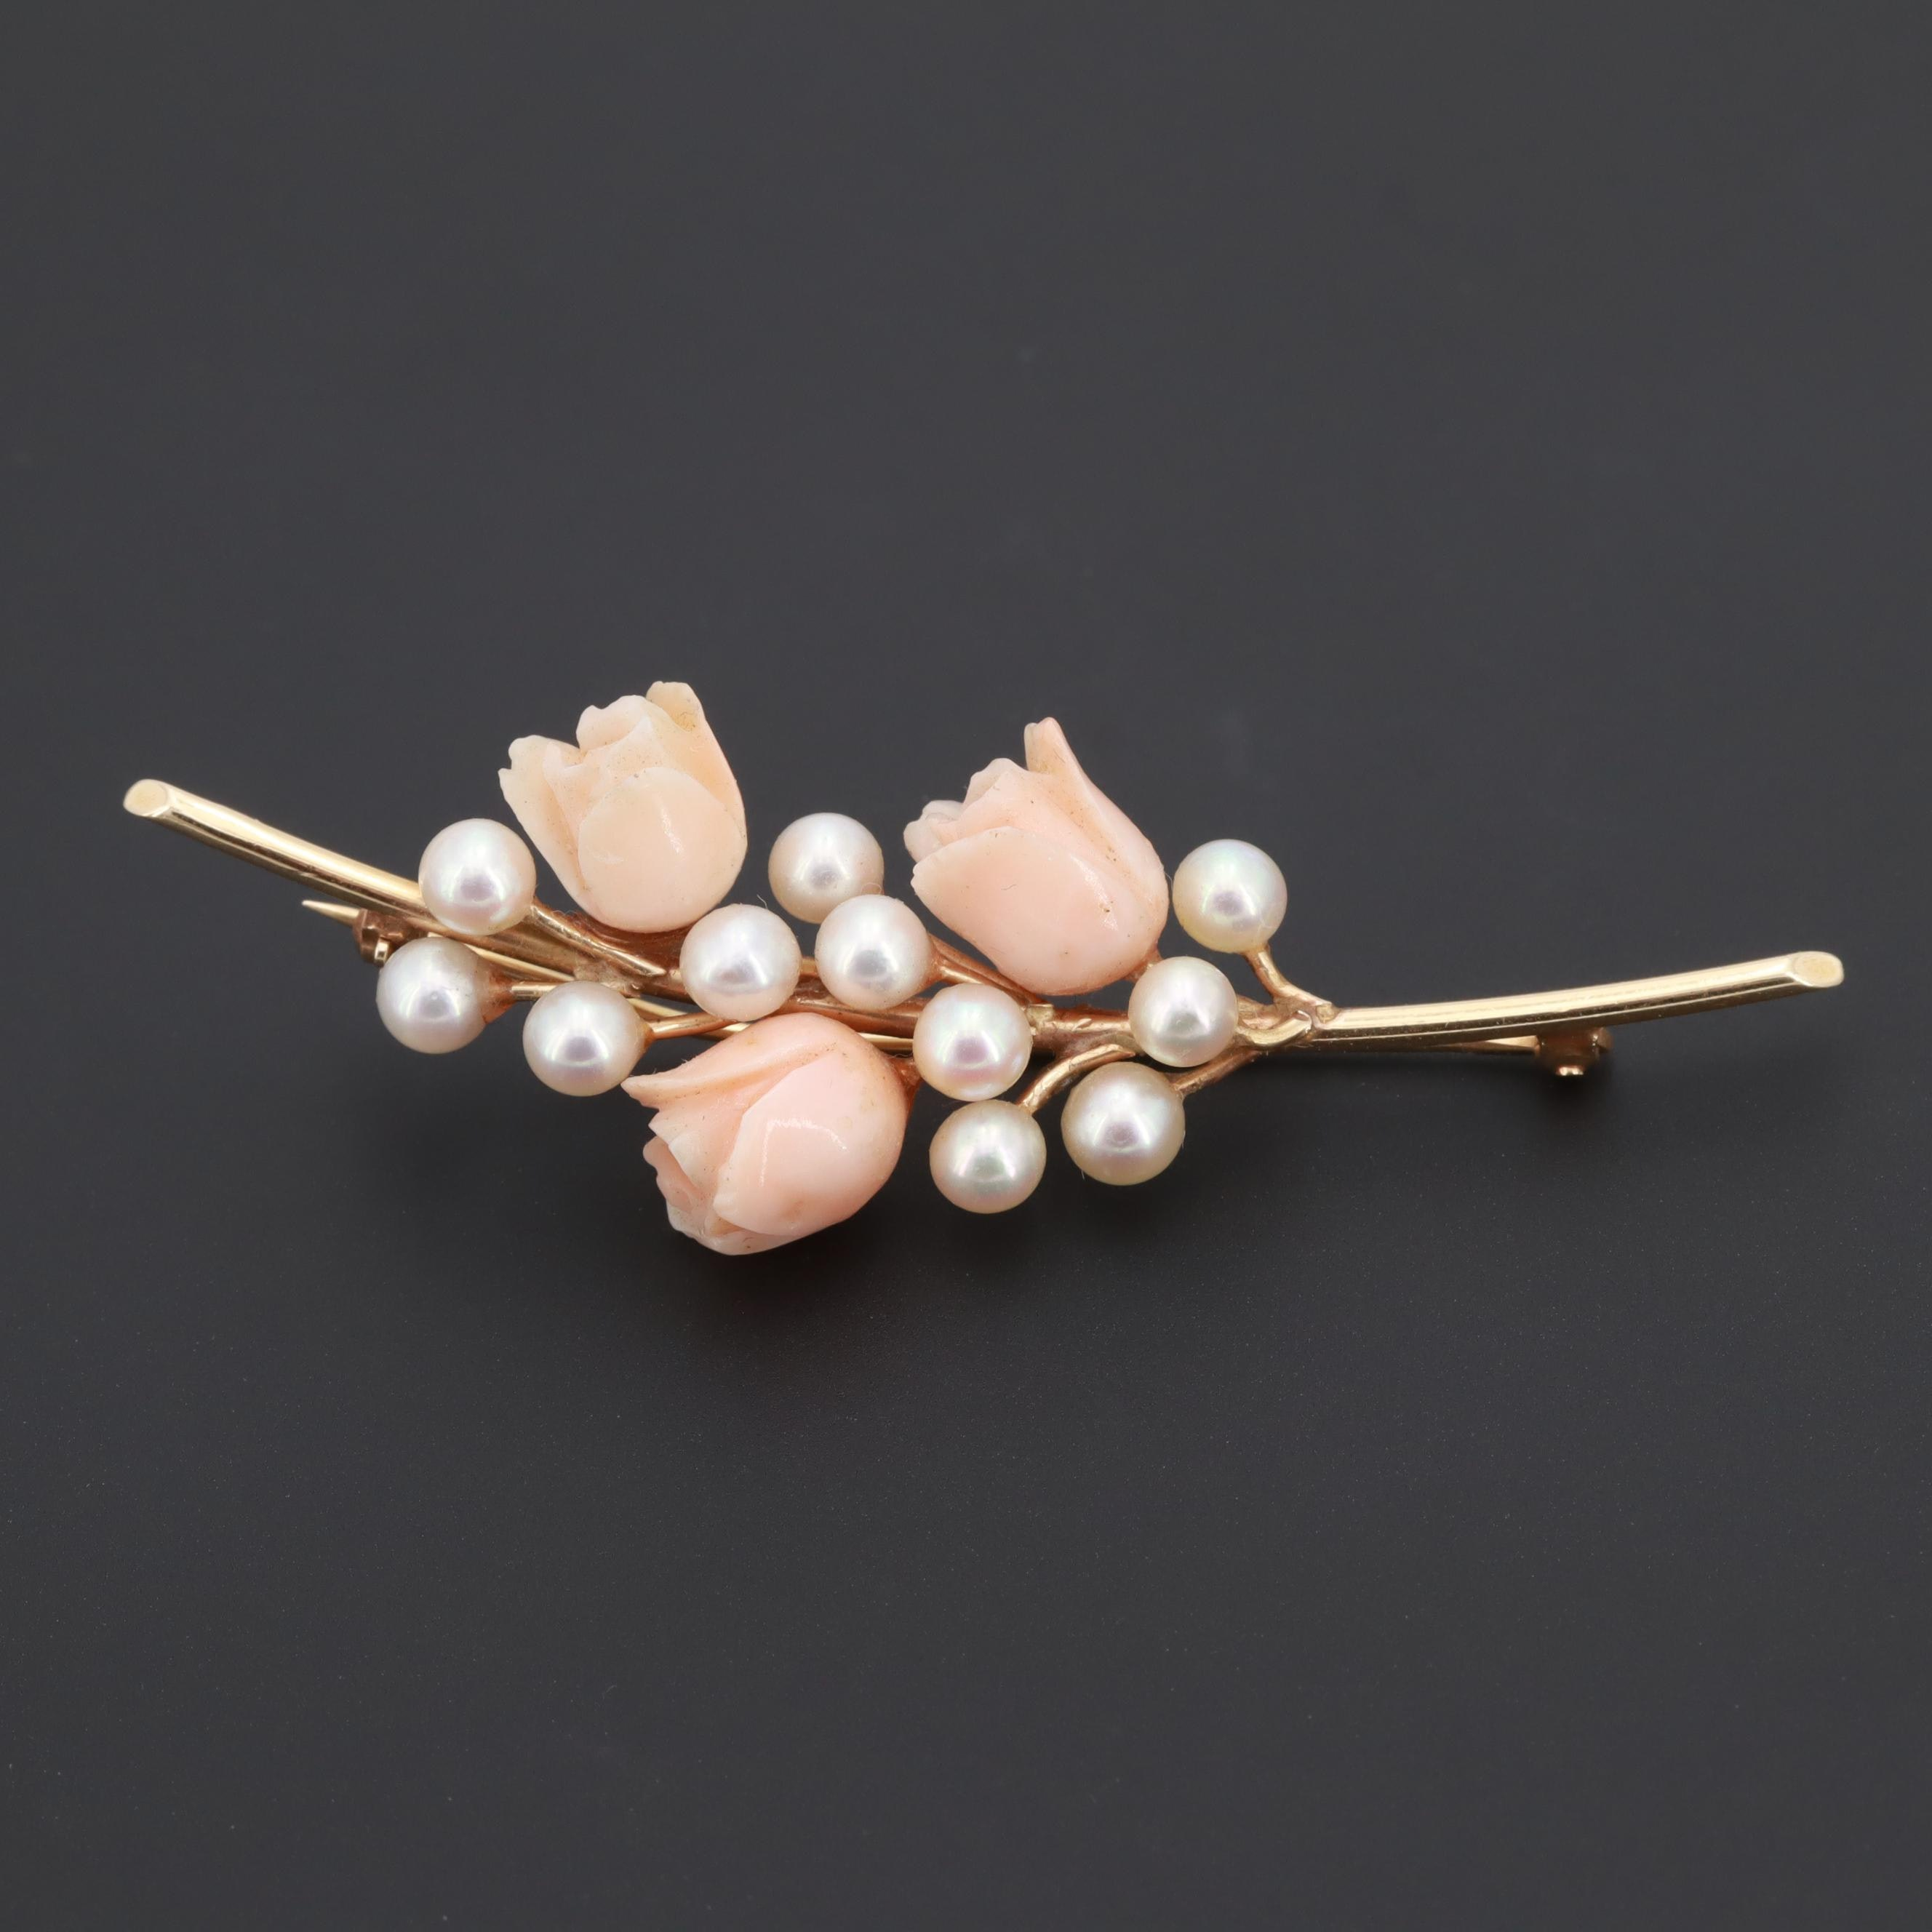 14K Yellow Gold Coral and Cultured Pearl Floral Motif Brooch